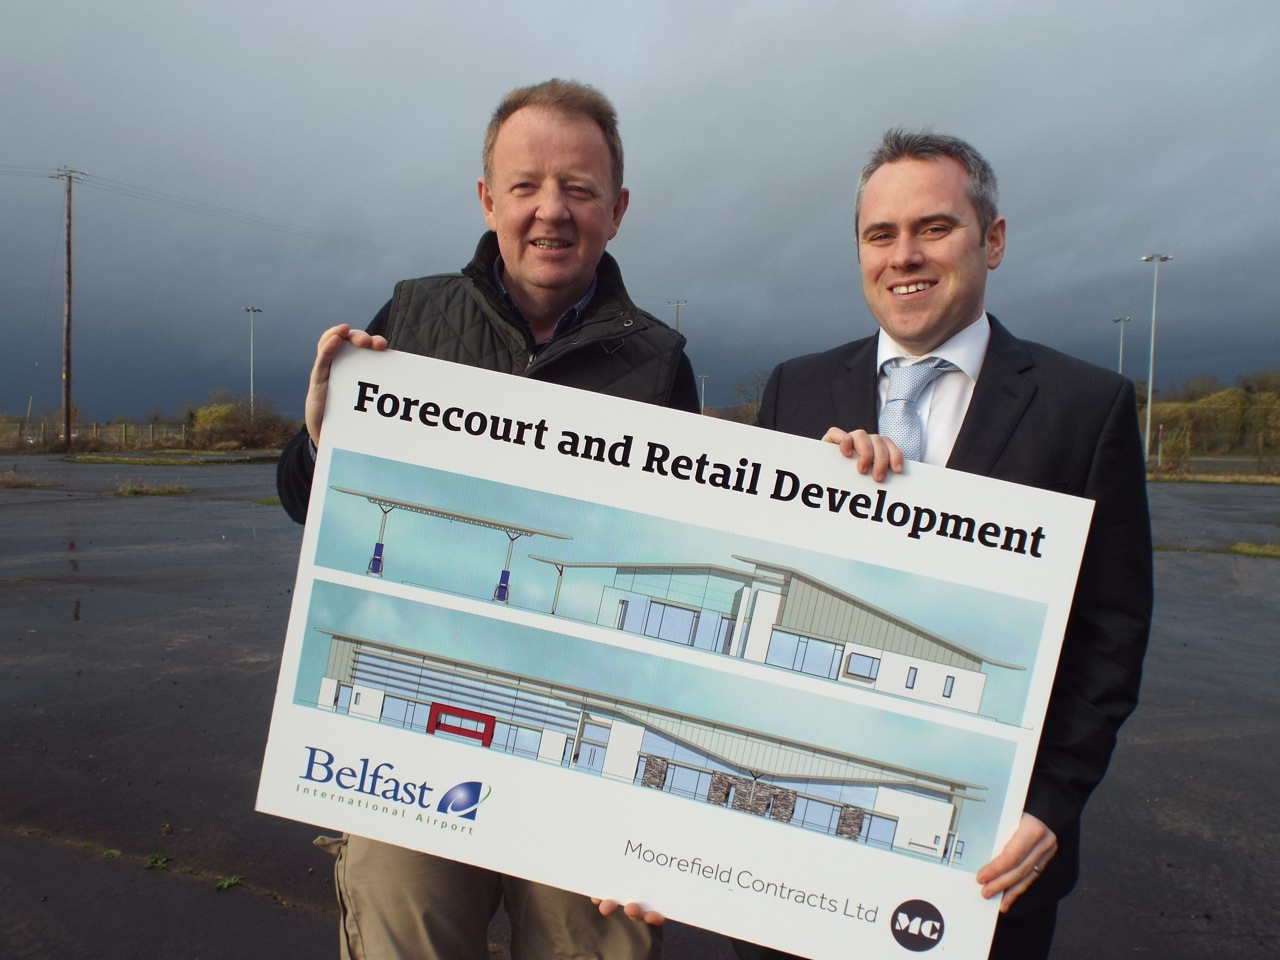 £2.5 million airport development to create 35 new jobs